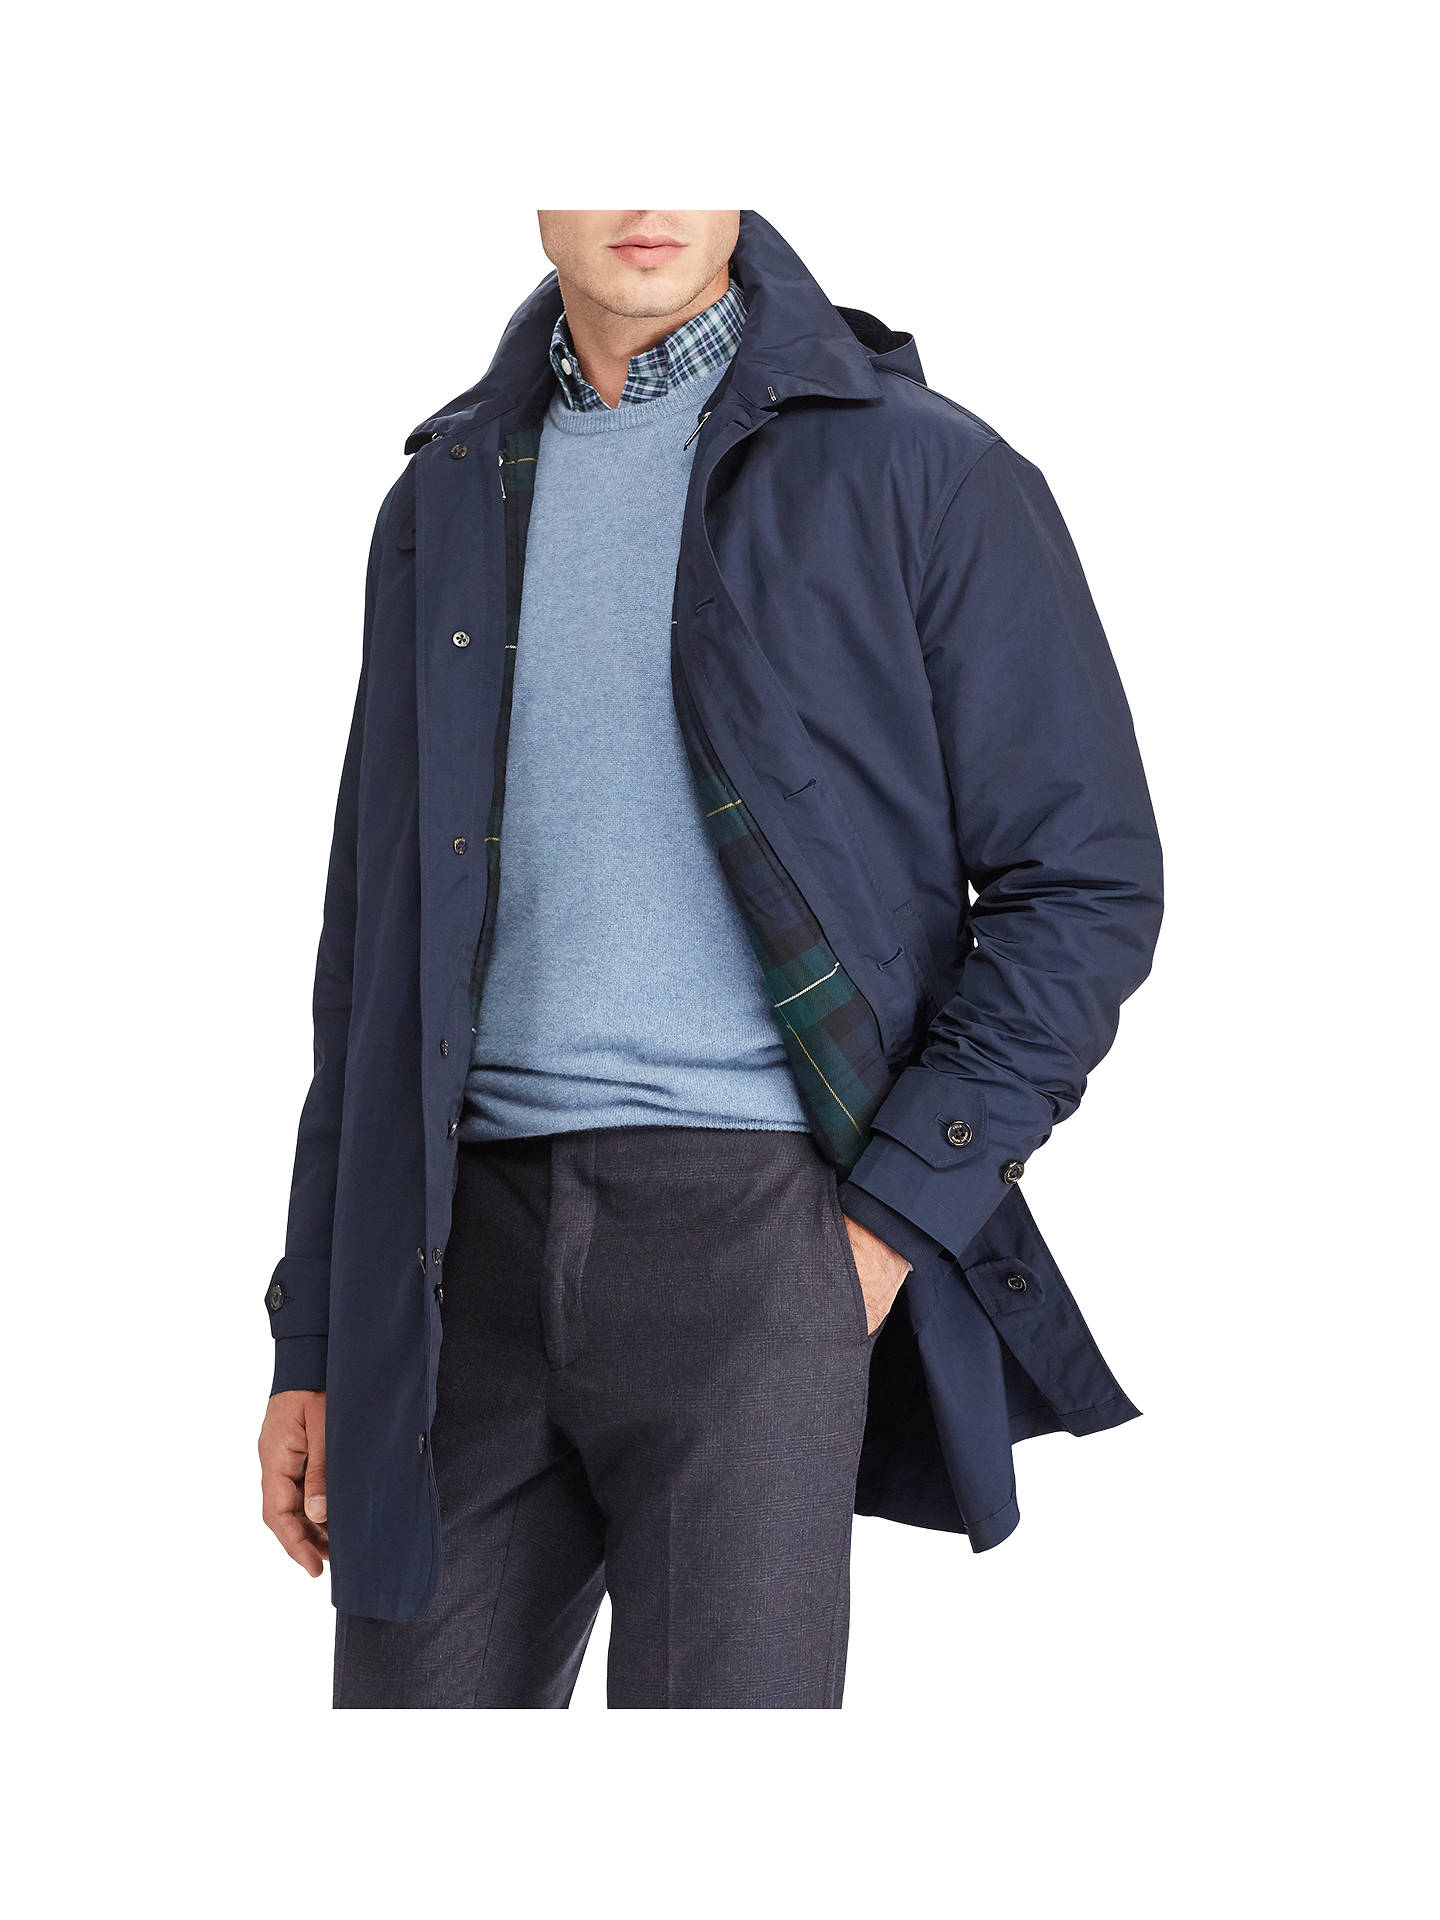 37ae14e06 Polo Ralph Lauren 3-in-1 Down Fill Coat, Village Navy at John Lewis ...